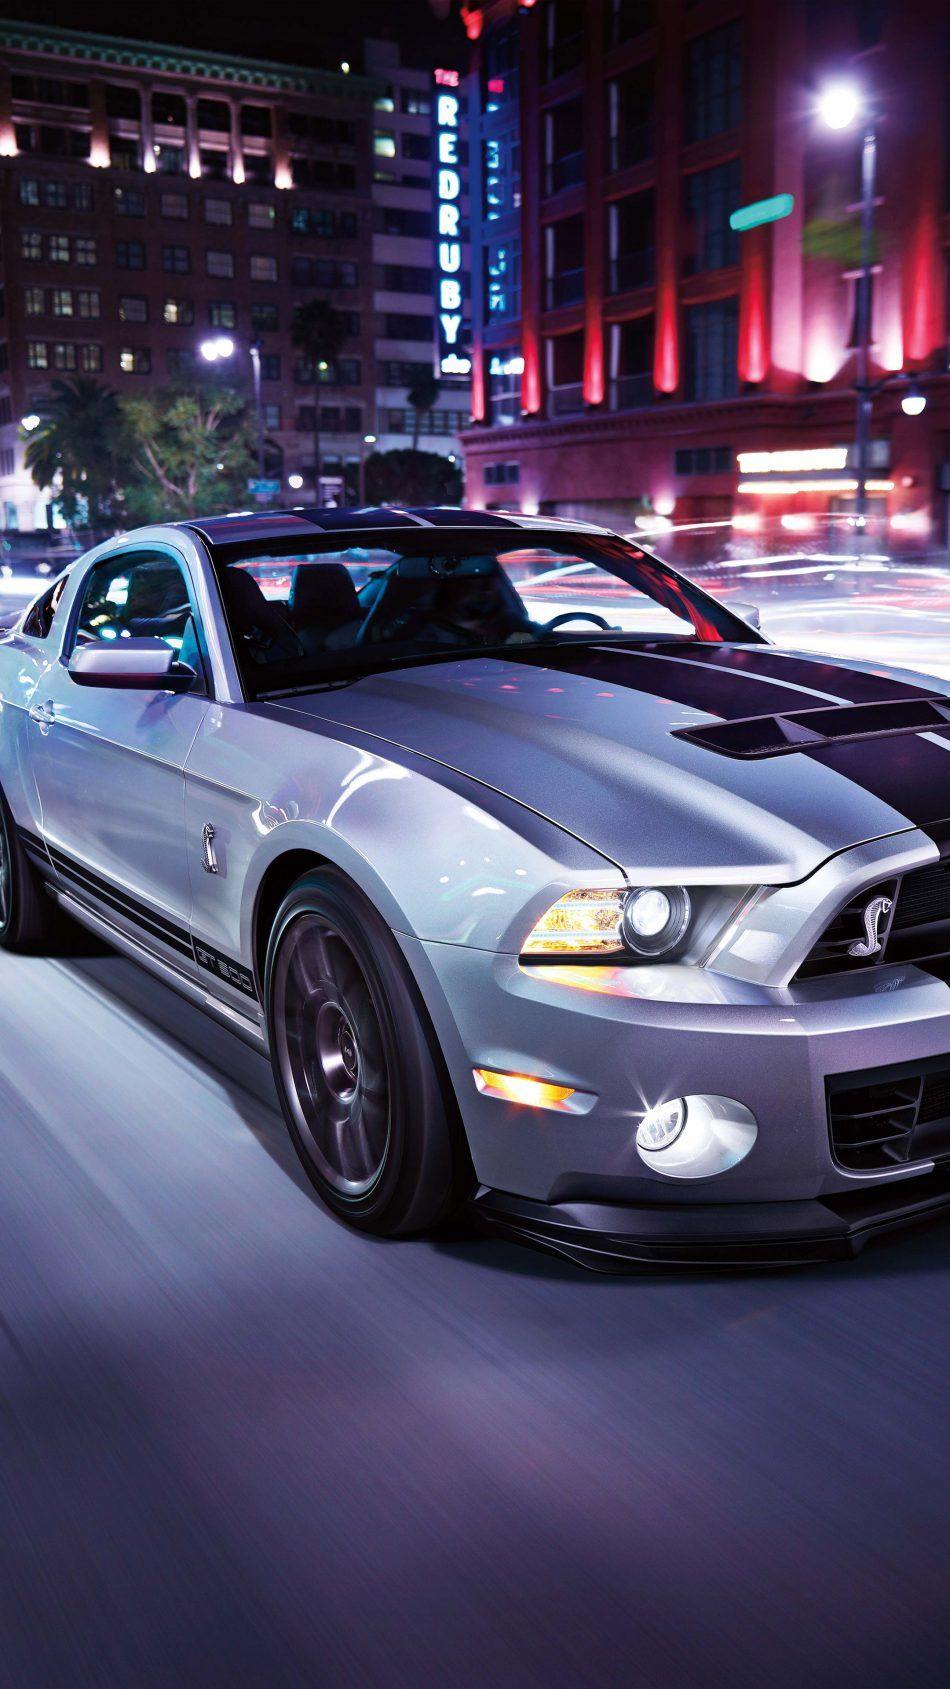 The best quality and size only with us! Ultra Hd 4k Resolution Ultra Hd 4k Car Wallpaper For Mobile